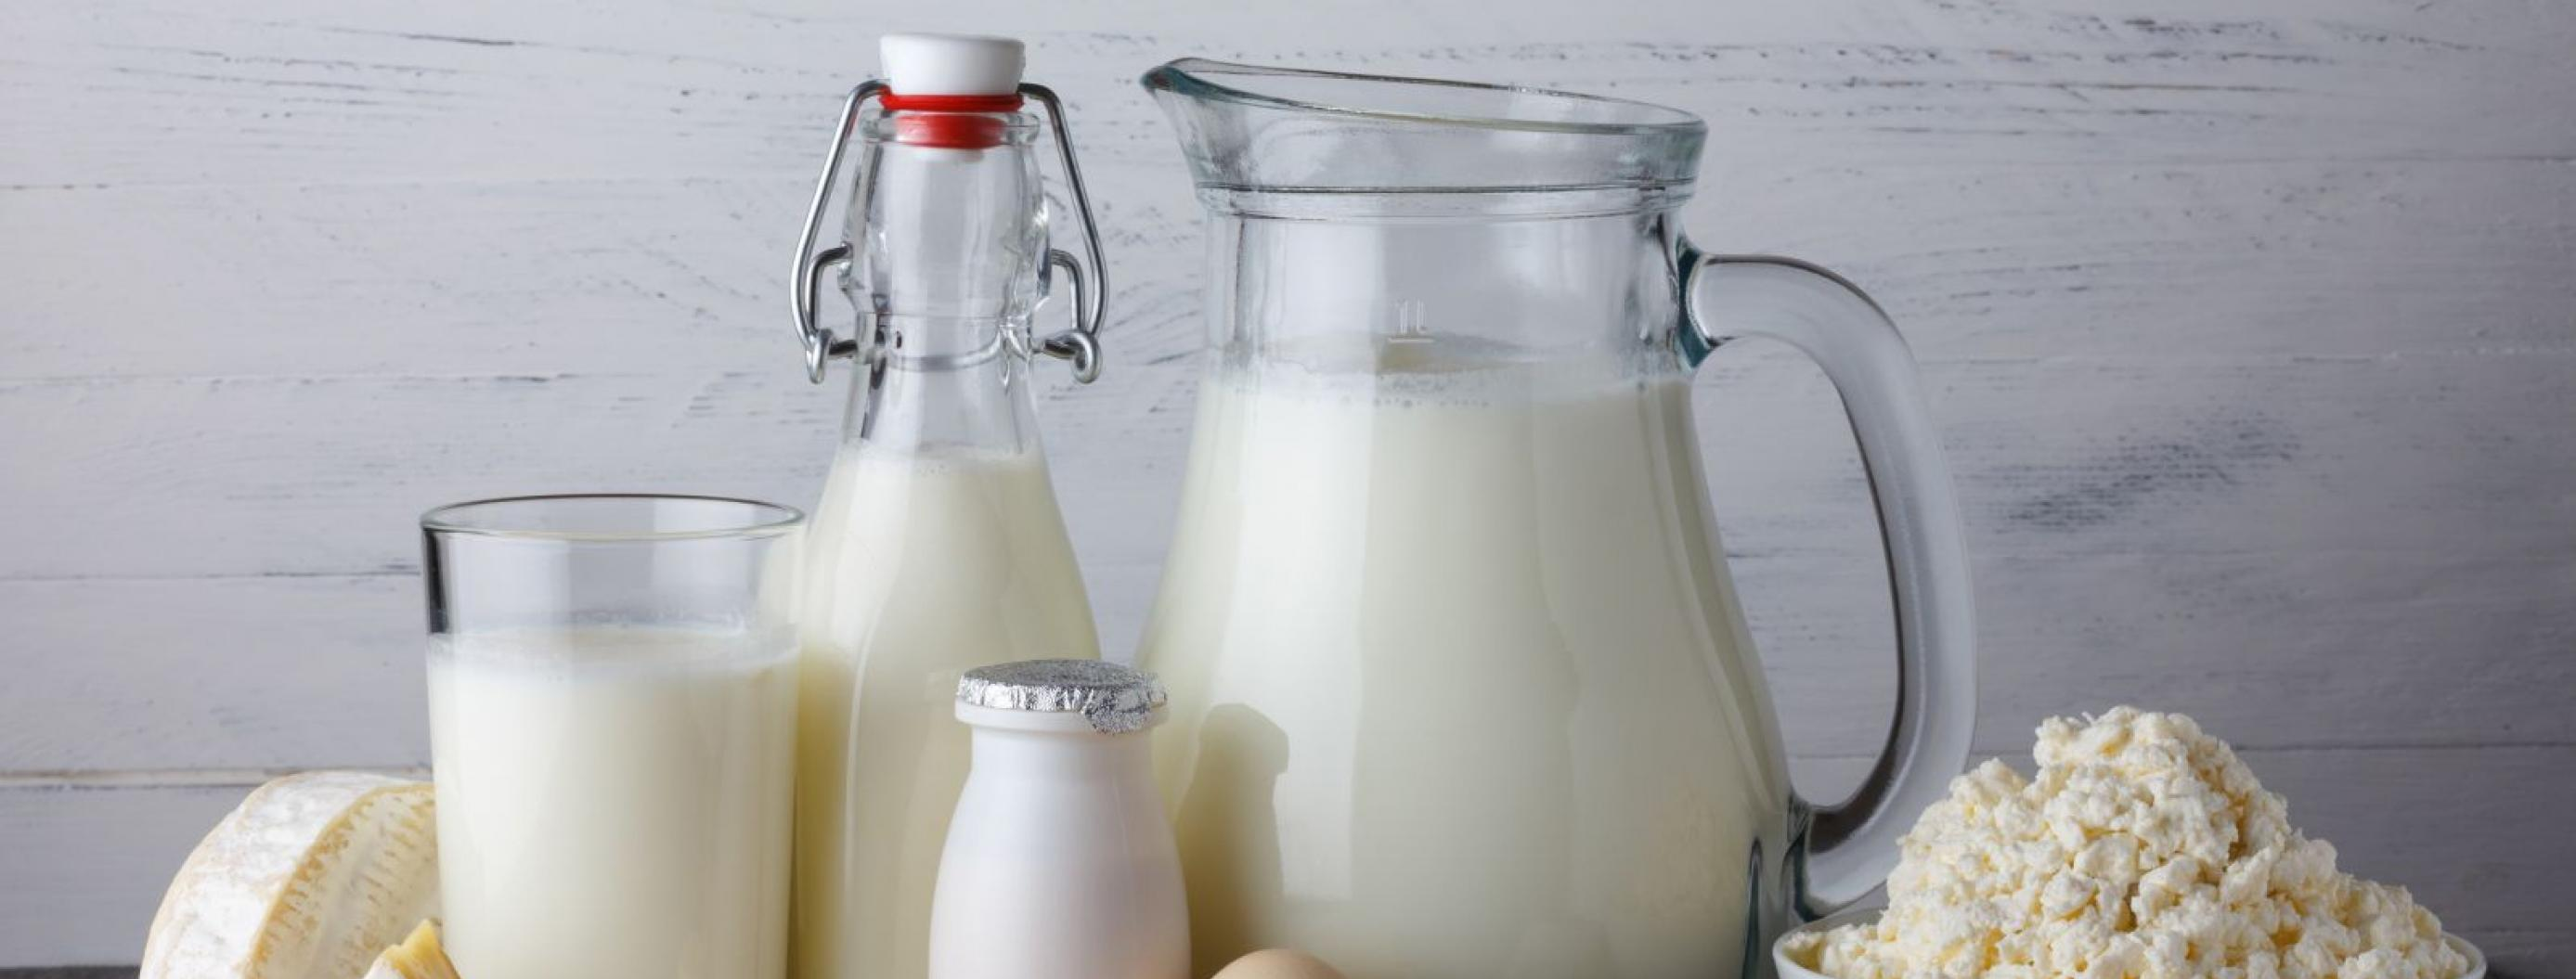 You Should Reconsider Low-Dairy Diets According to New Study